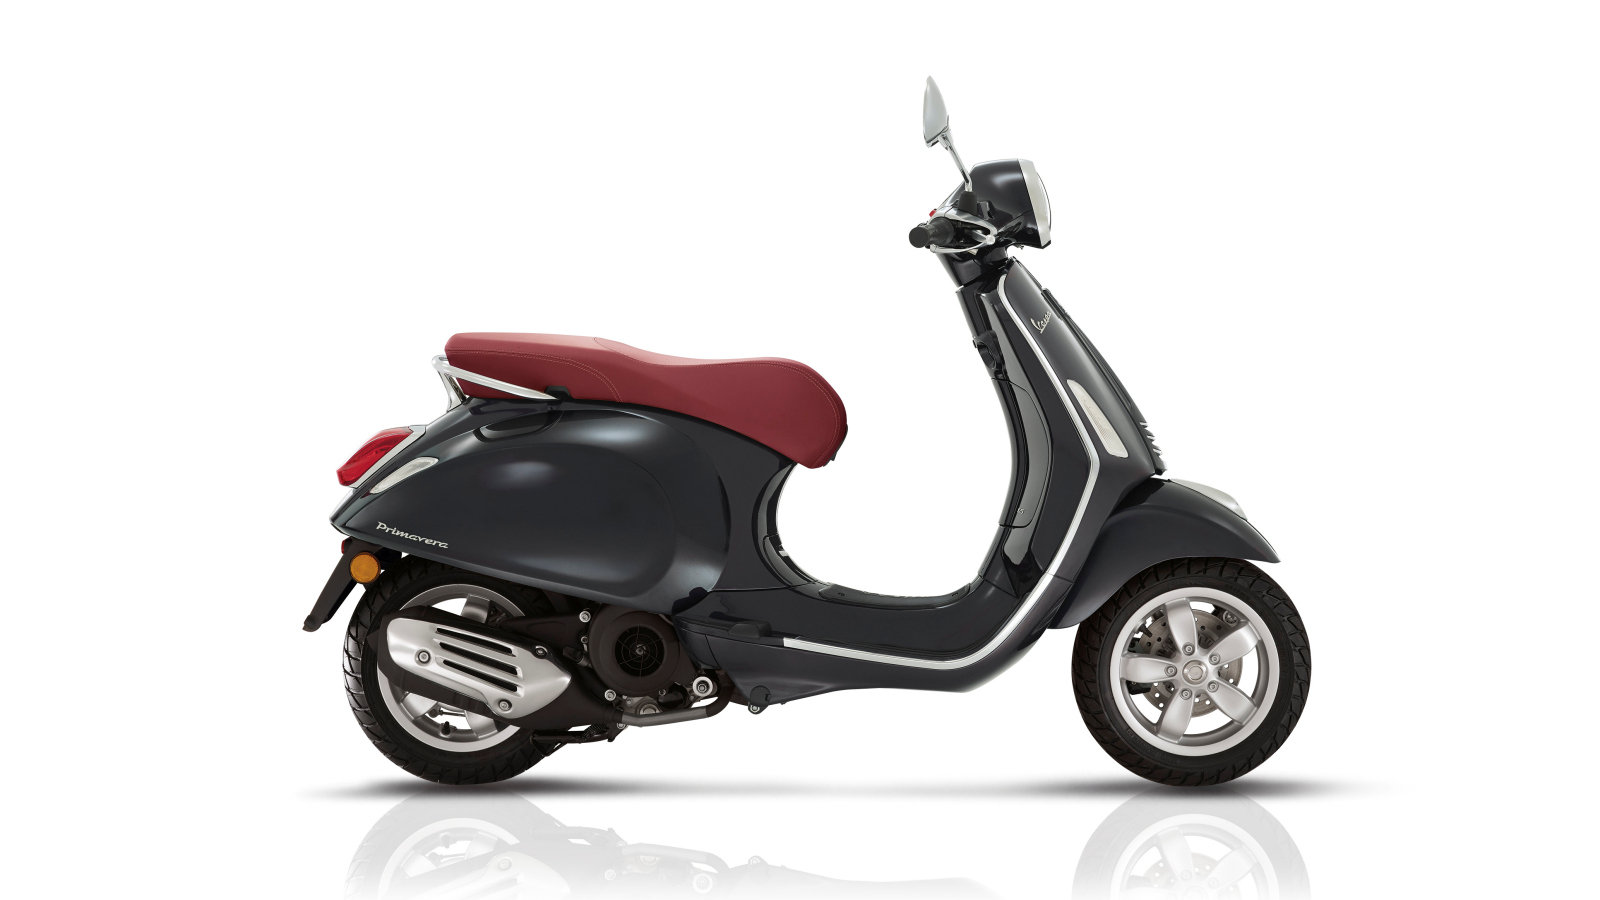 2015 2016 vespa primavera 50 150 picture 682069 motorcycle review top speed. Black Bedroom Furniture Sets. Home Design Ideas